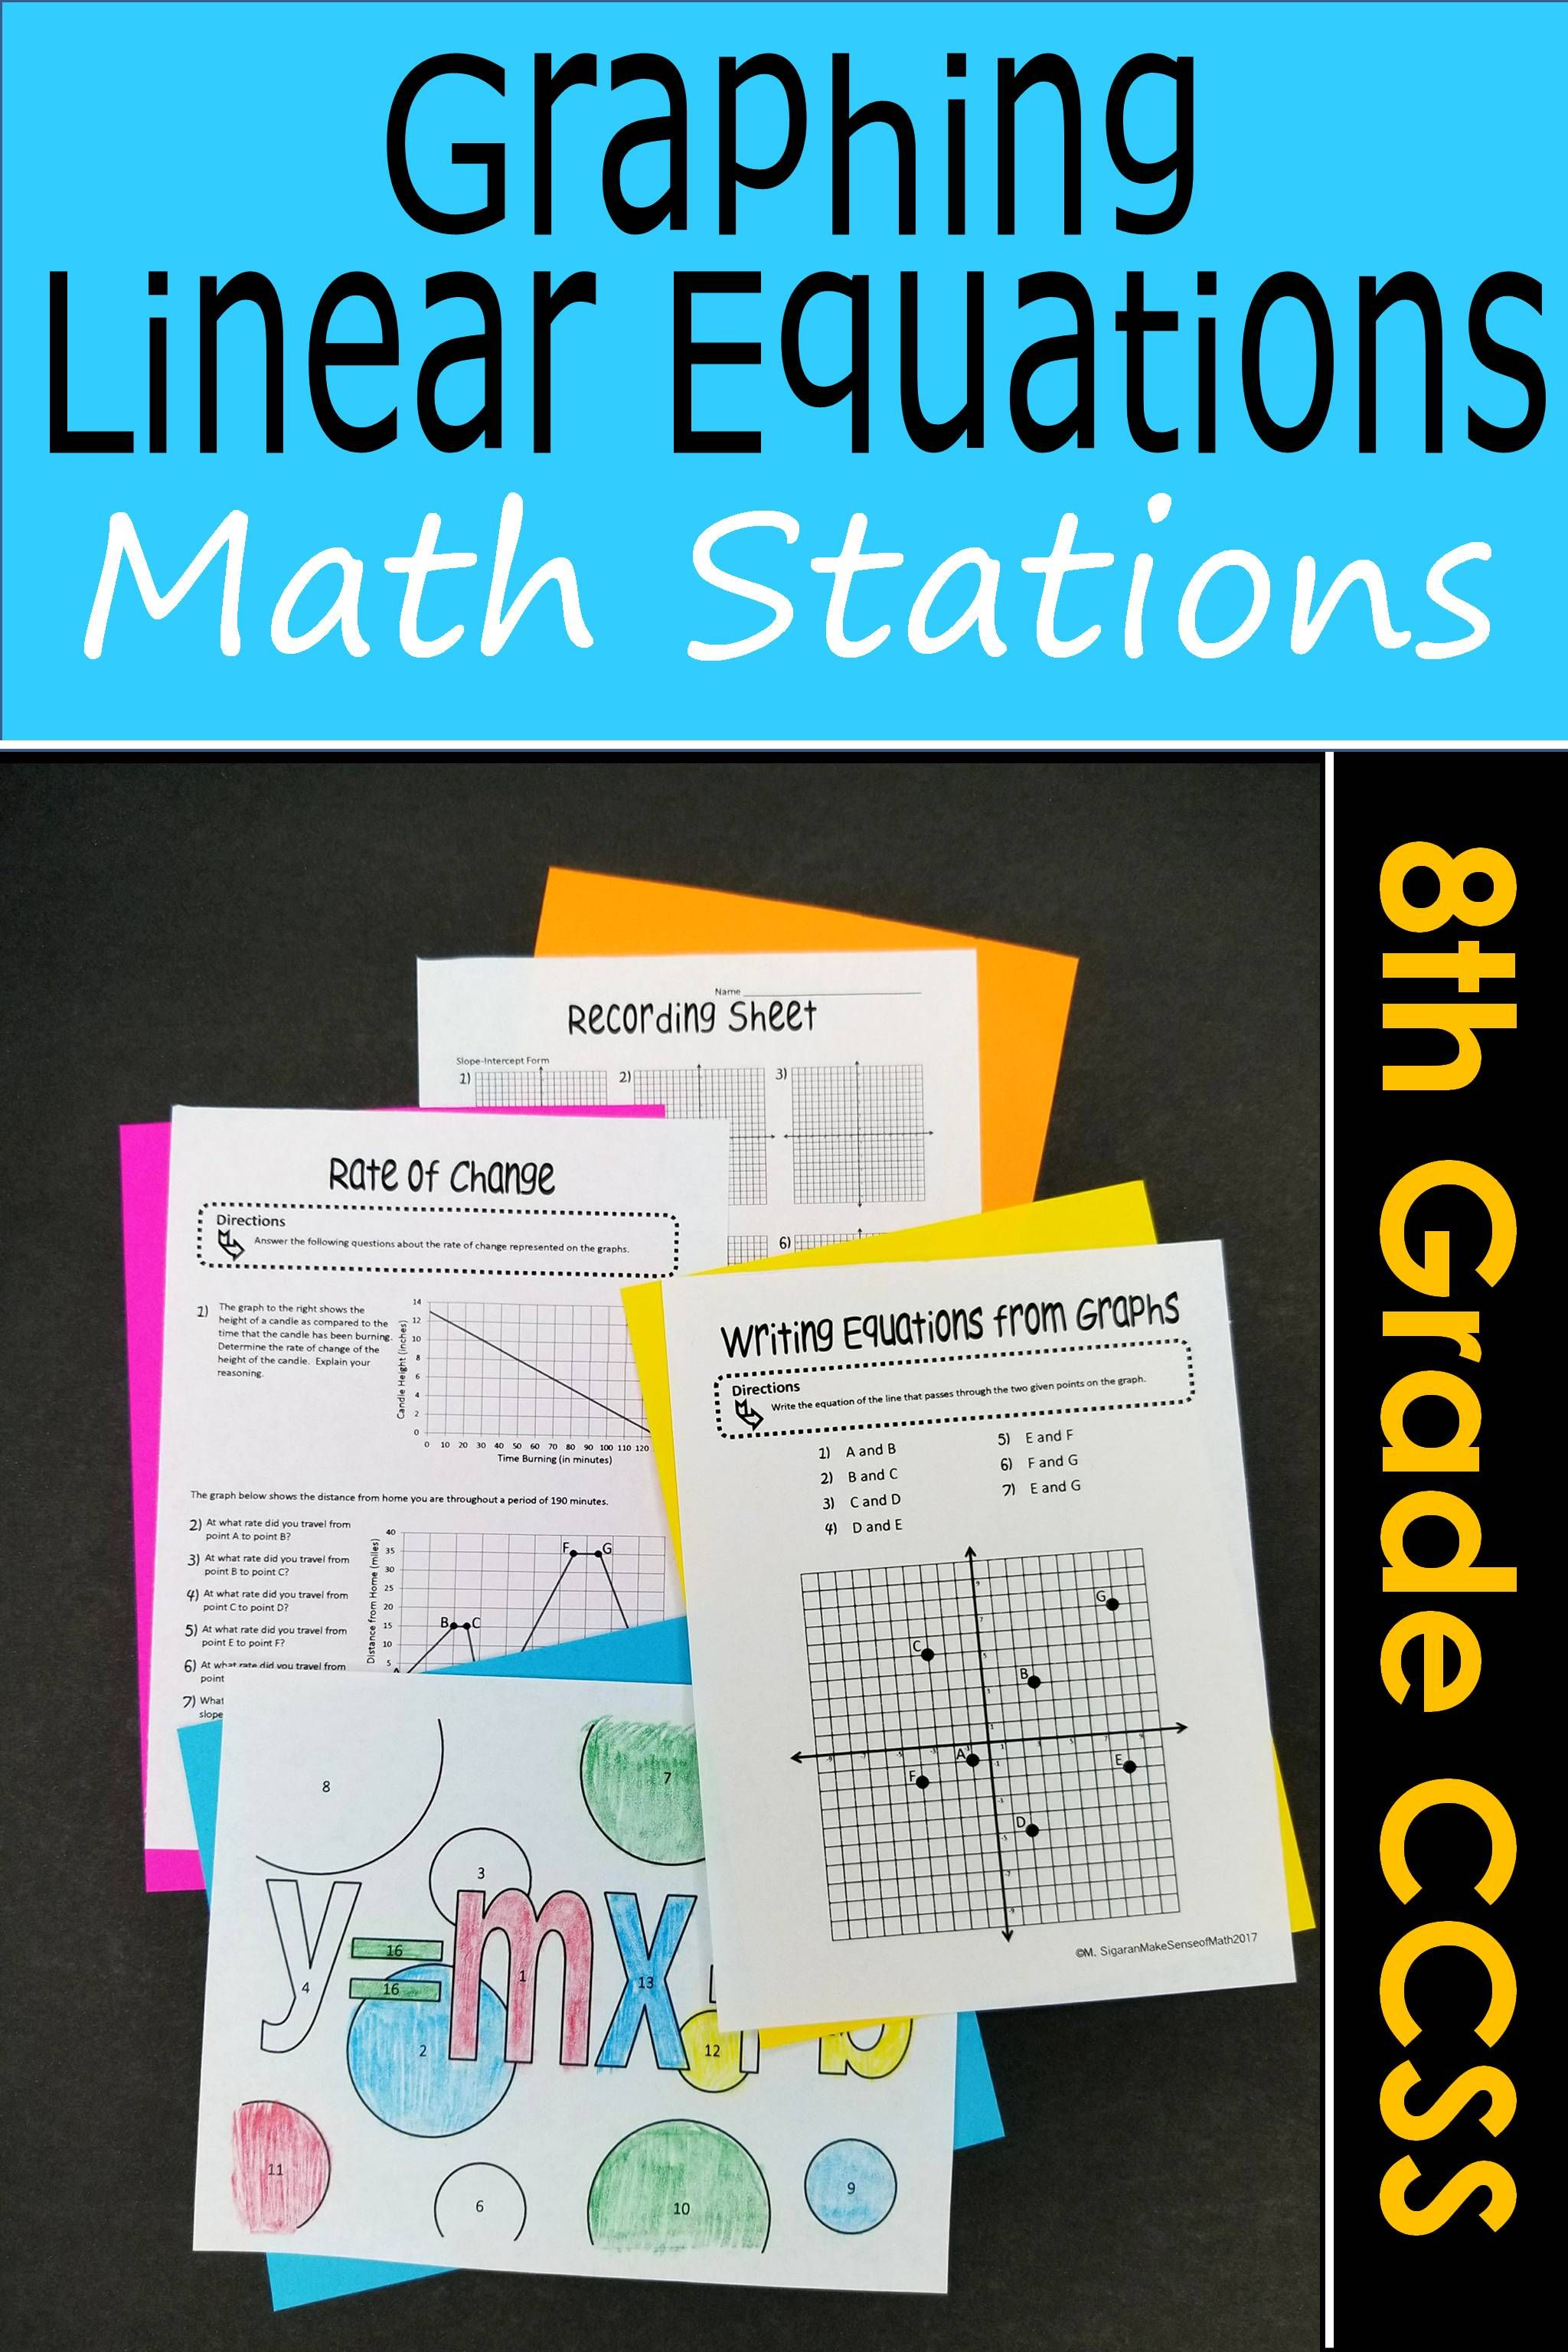 Graphing Linear Equations Math Stations : Middle School Math ...